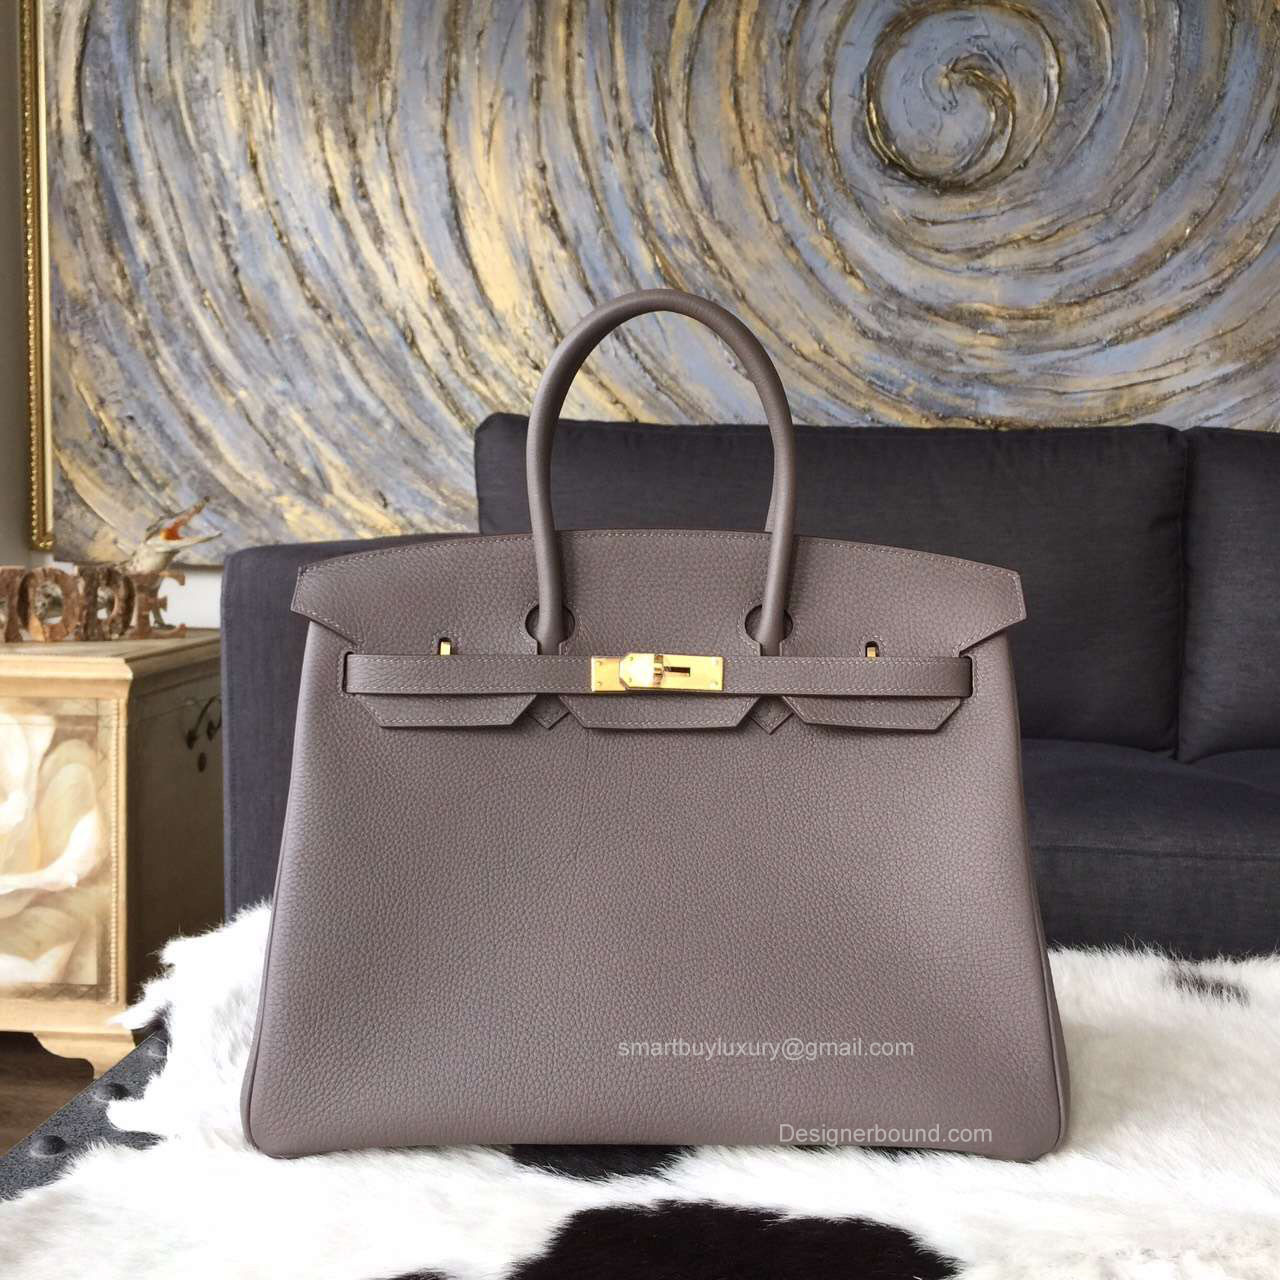 5c8d62b47f2a ... hermes grey etain togo birkin bag- 35 cm size with gold ...